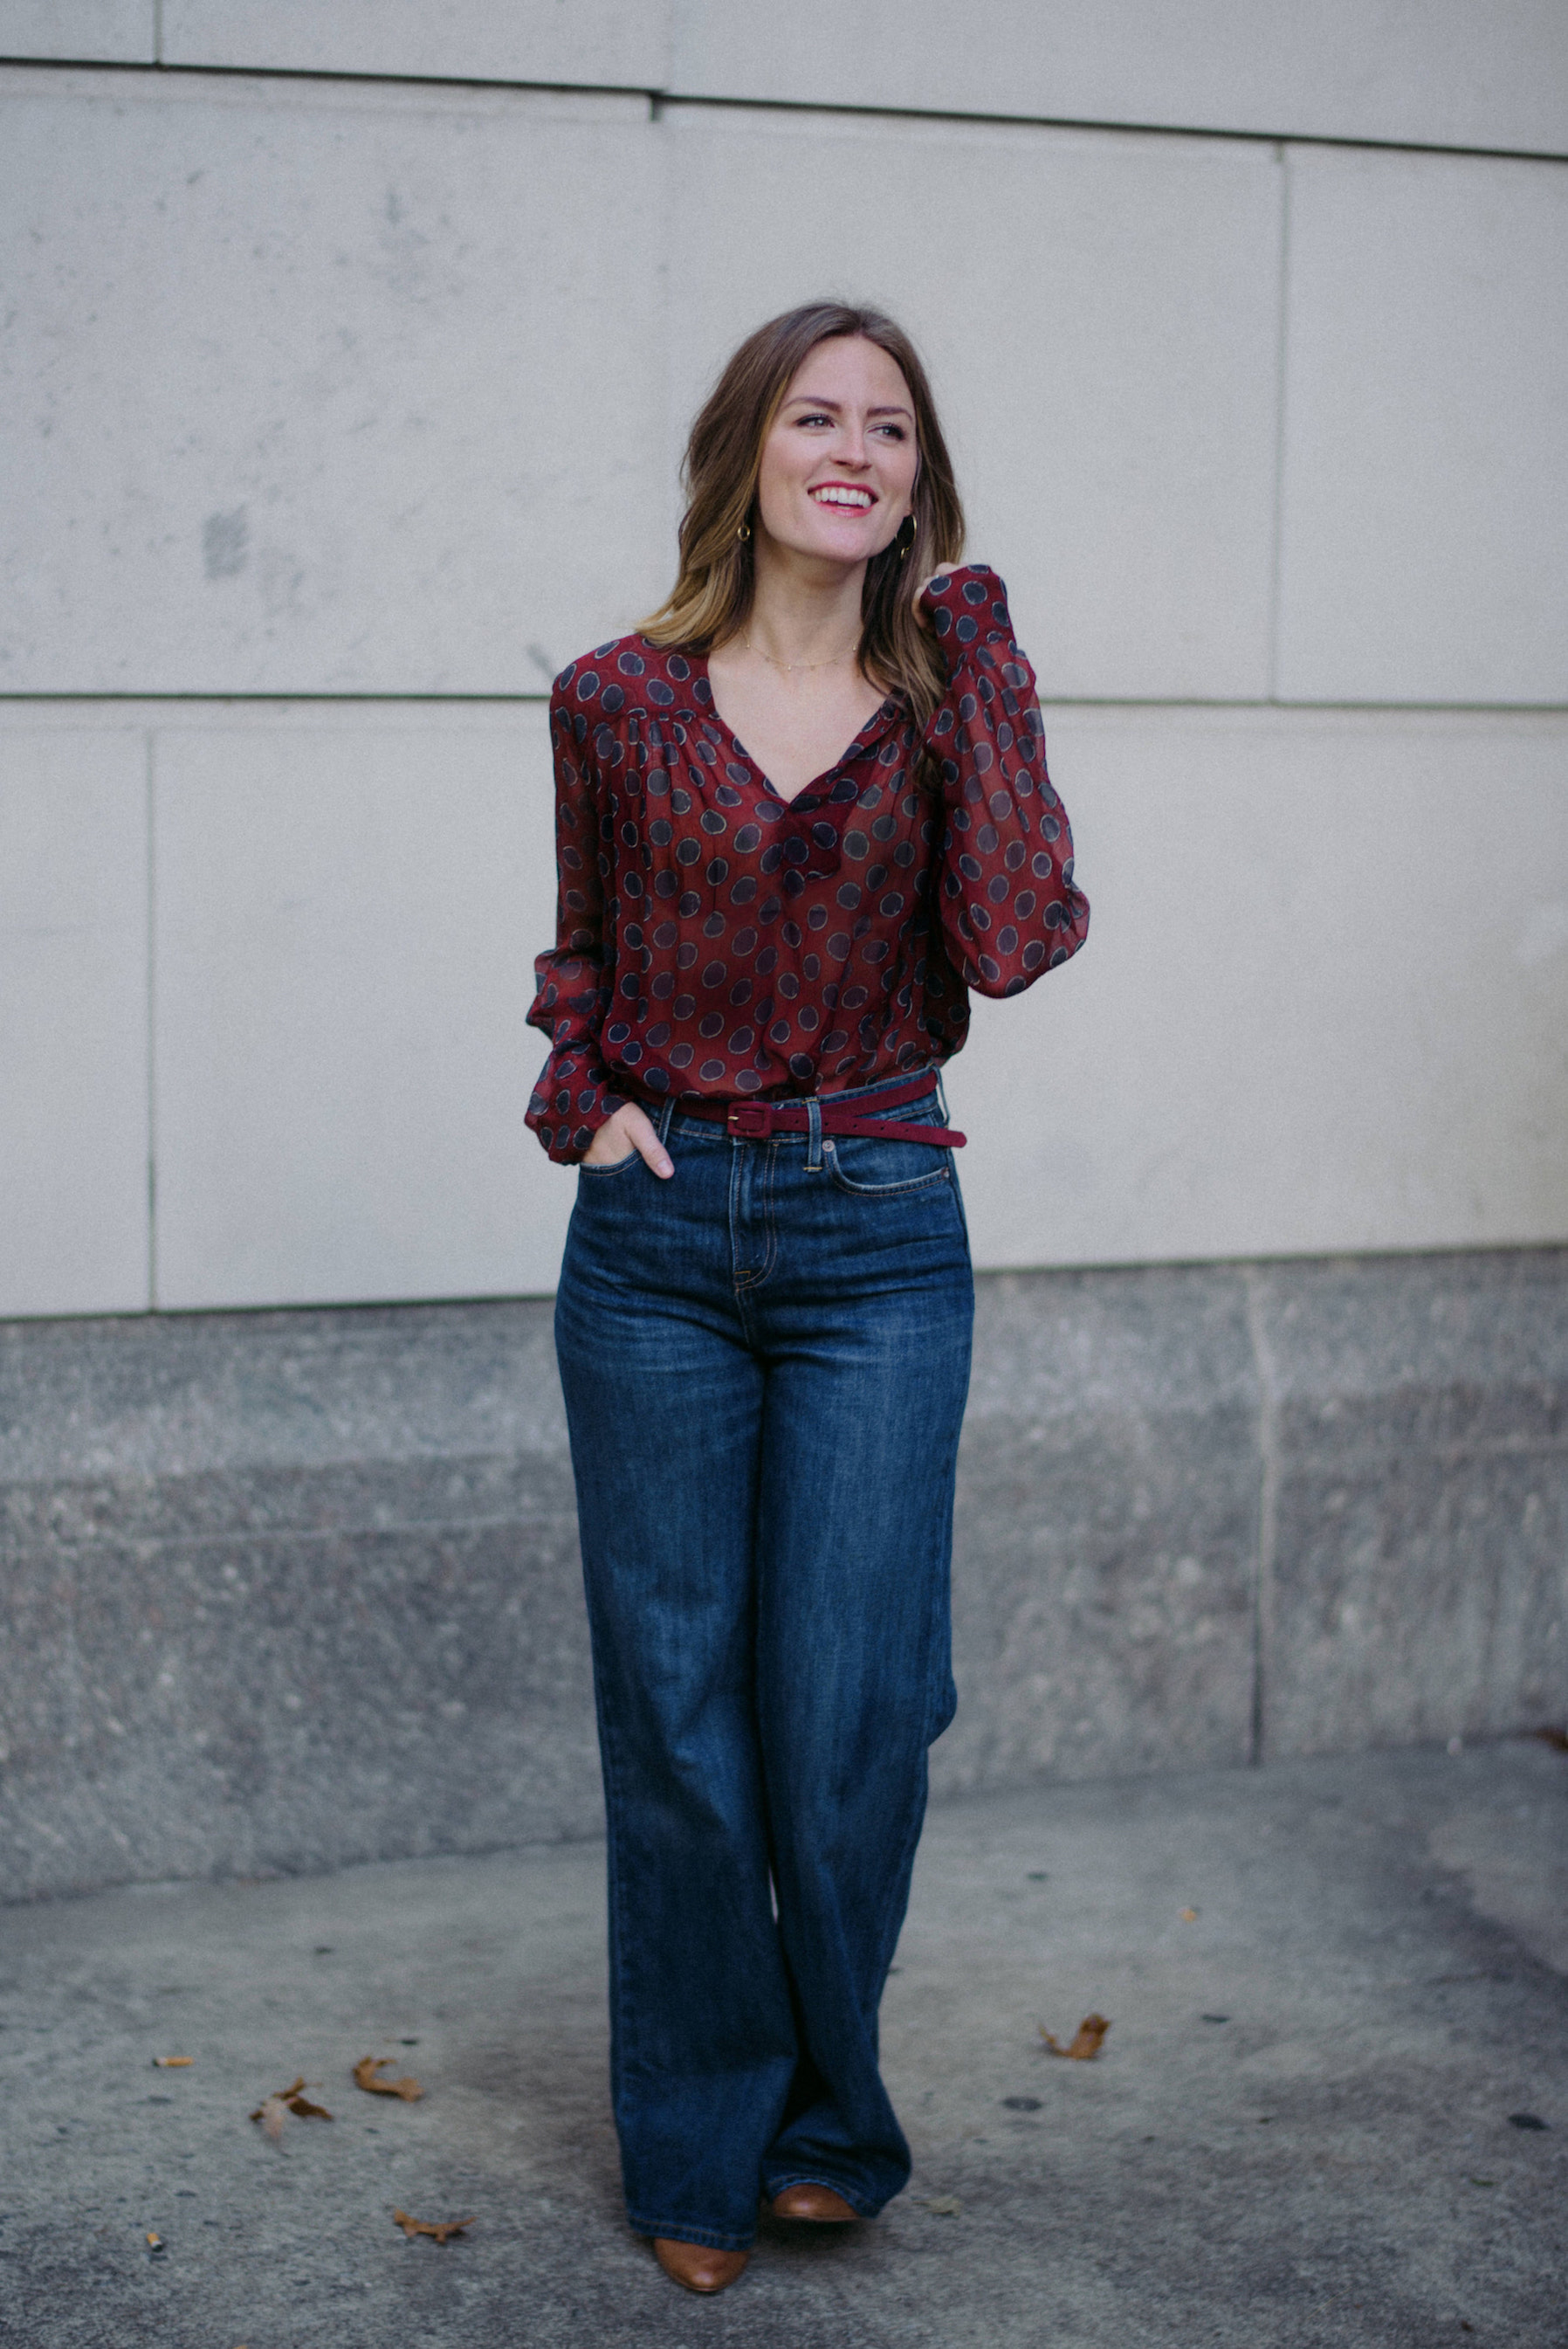 Wide leg denim with button down shirt // A Week Of  Nashville-Chic Ethical Outfits With Jordan Soderholm, Fashion Director At ABLE on The Good Trade